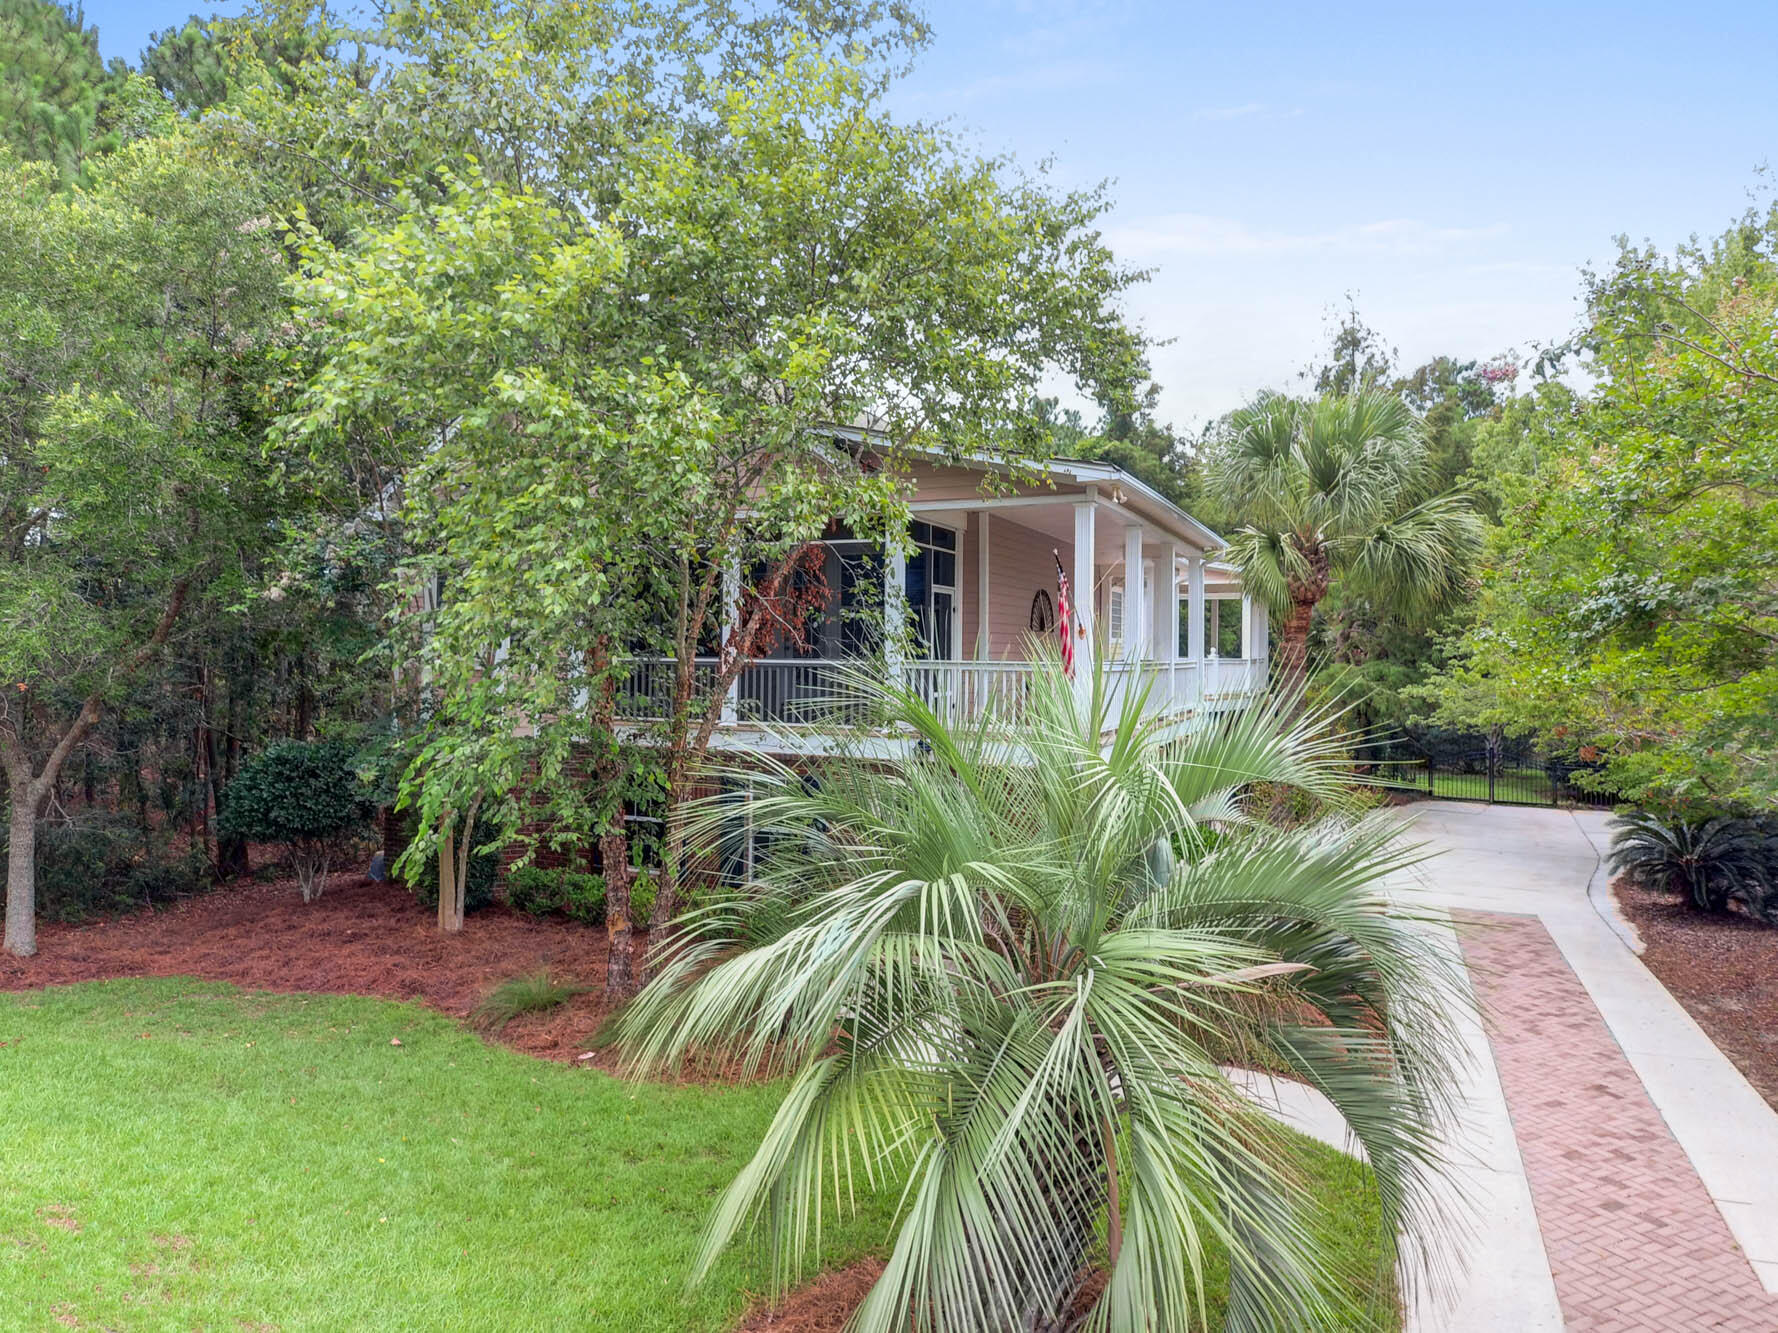 Rivertowne Country Club Homes For Sale - 1741 Rivertowne Country Club, Mount Pleasant, SC - 13